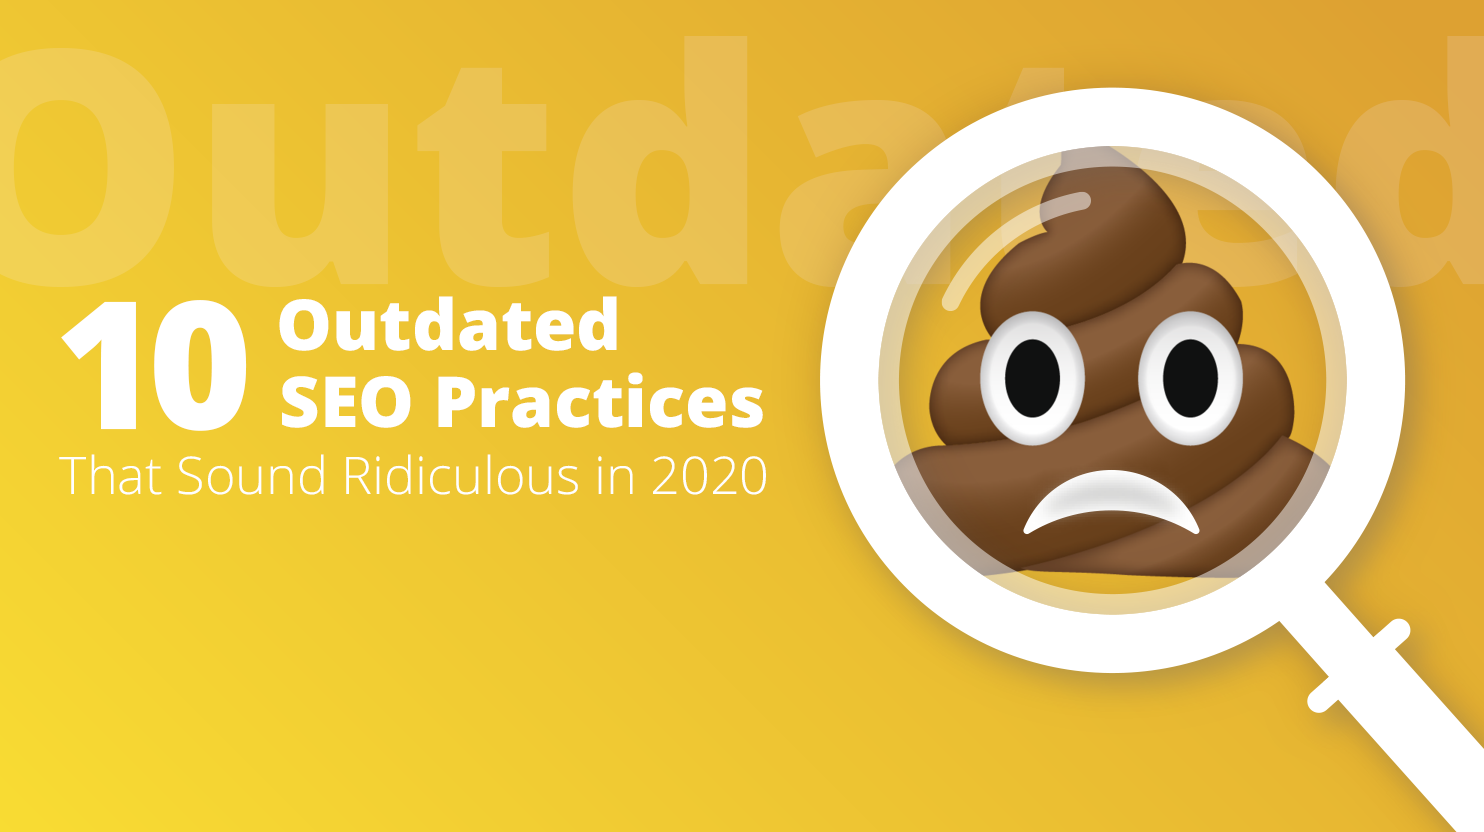 Outdated SEO practices